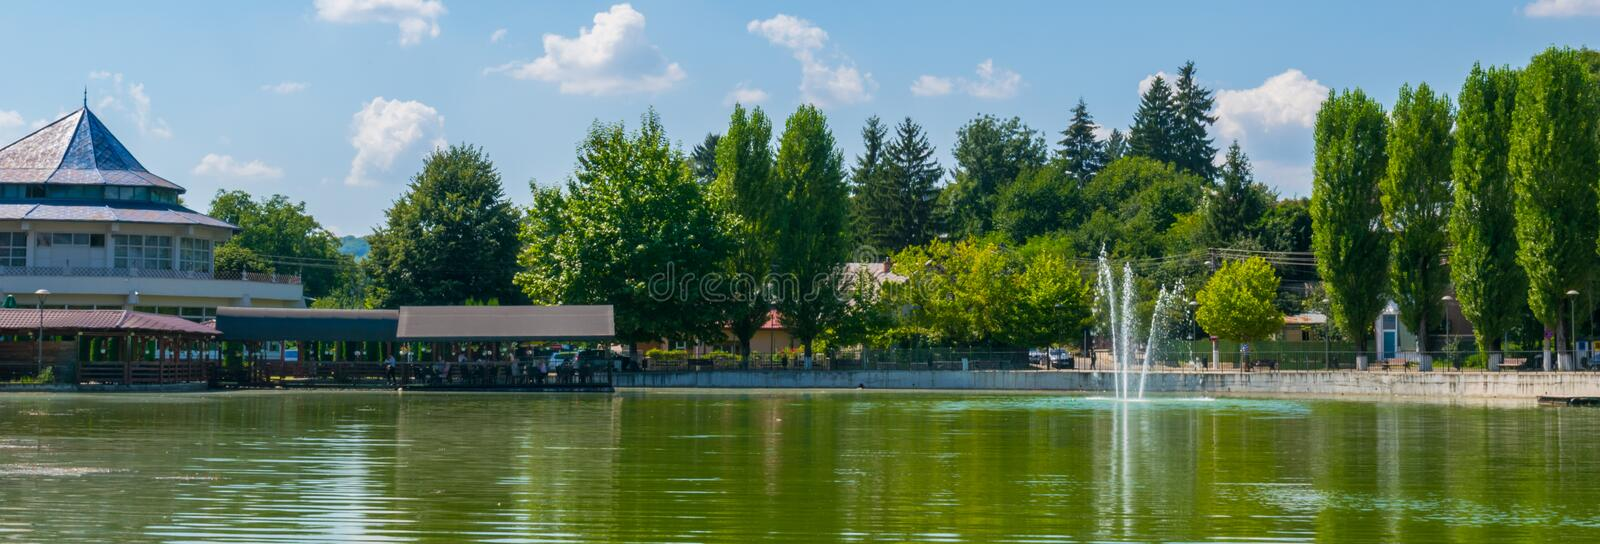 Campina, Romania - August 16, 2018: view of the cursed Bride`s Lake or the Church Lake showing green trees and water fountain sit. Uated in Campina, Prahova stock photo